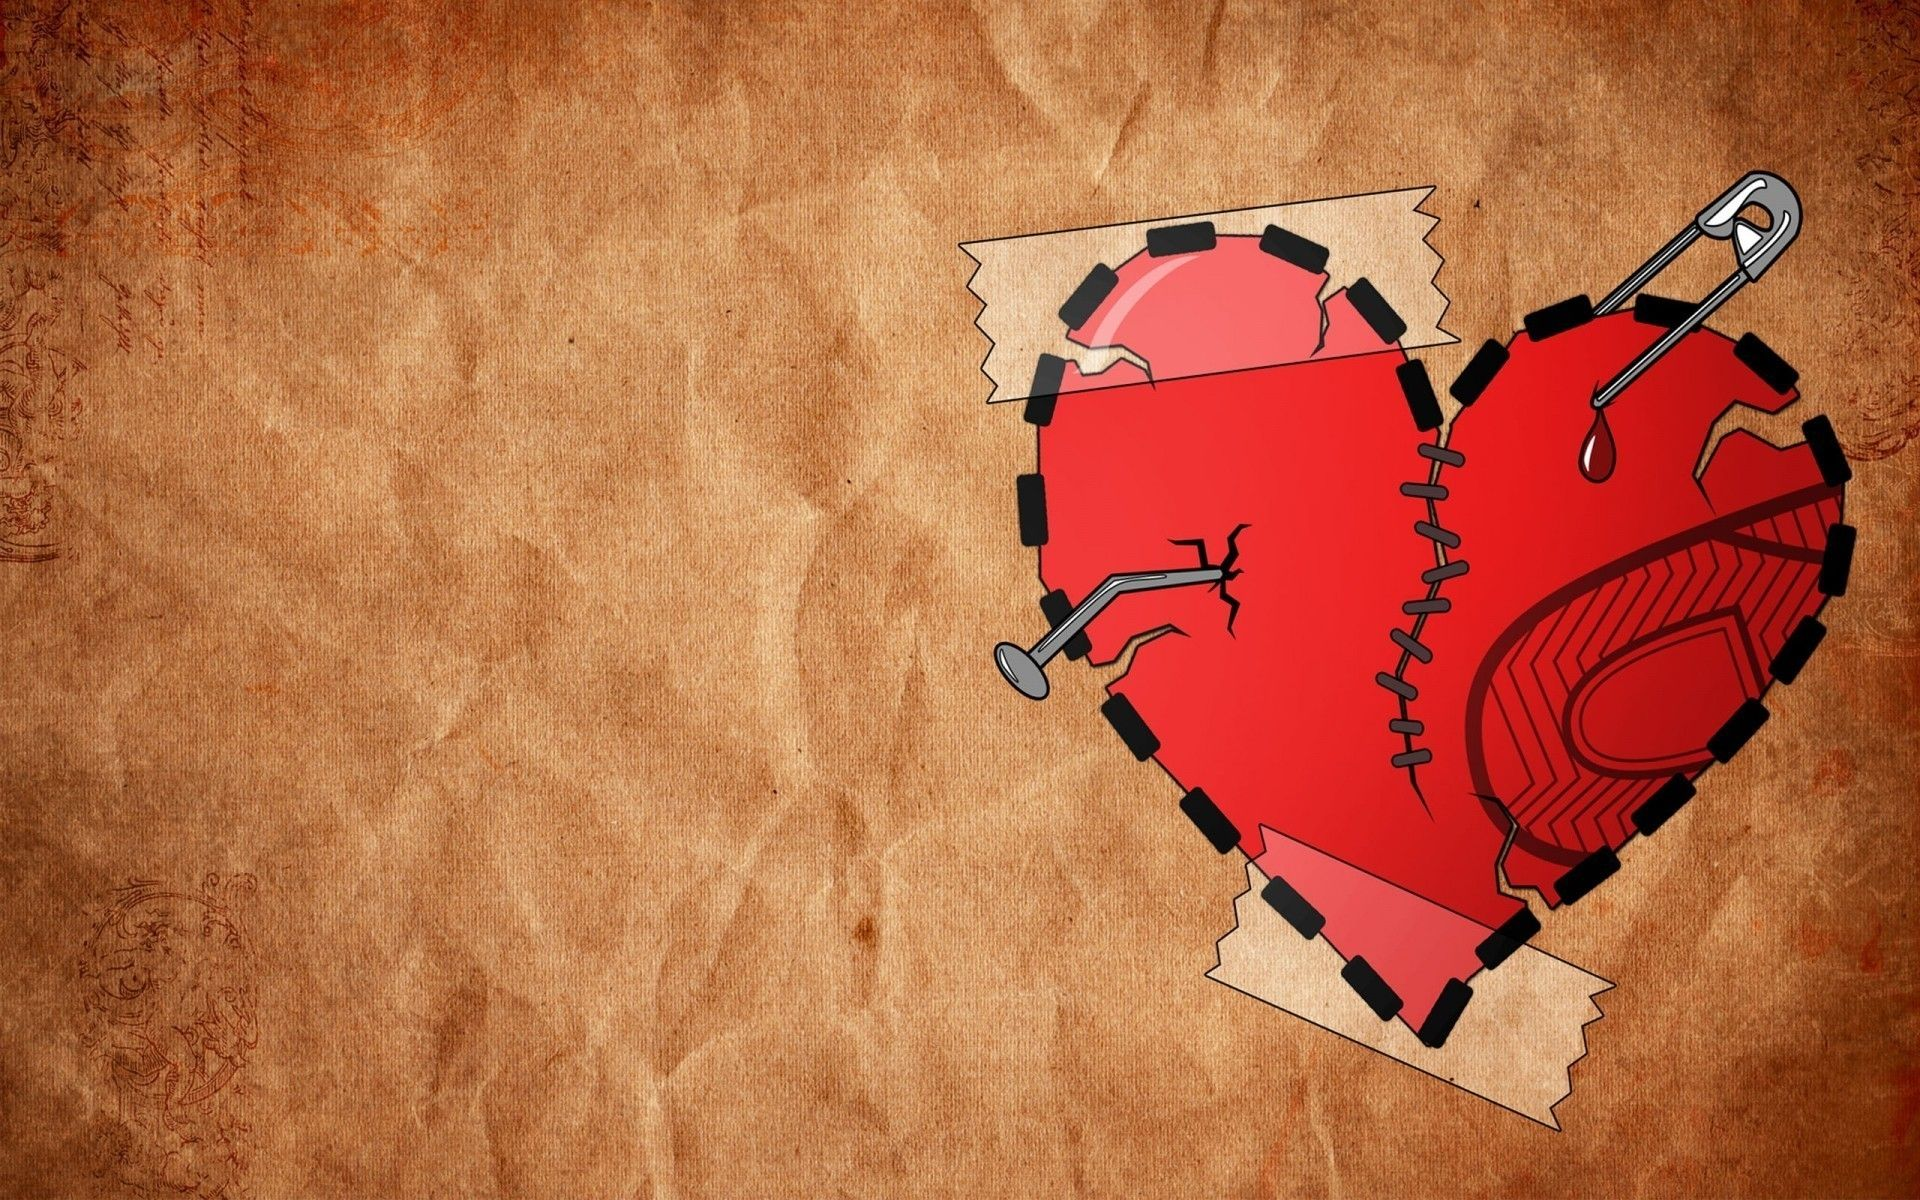 Broken heart sad quotes with pictures and wallpapers hd